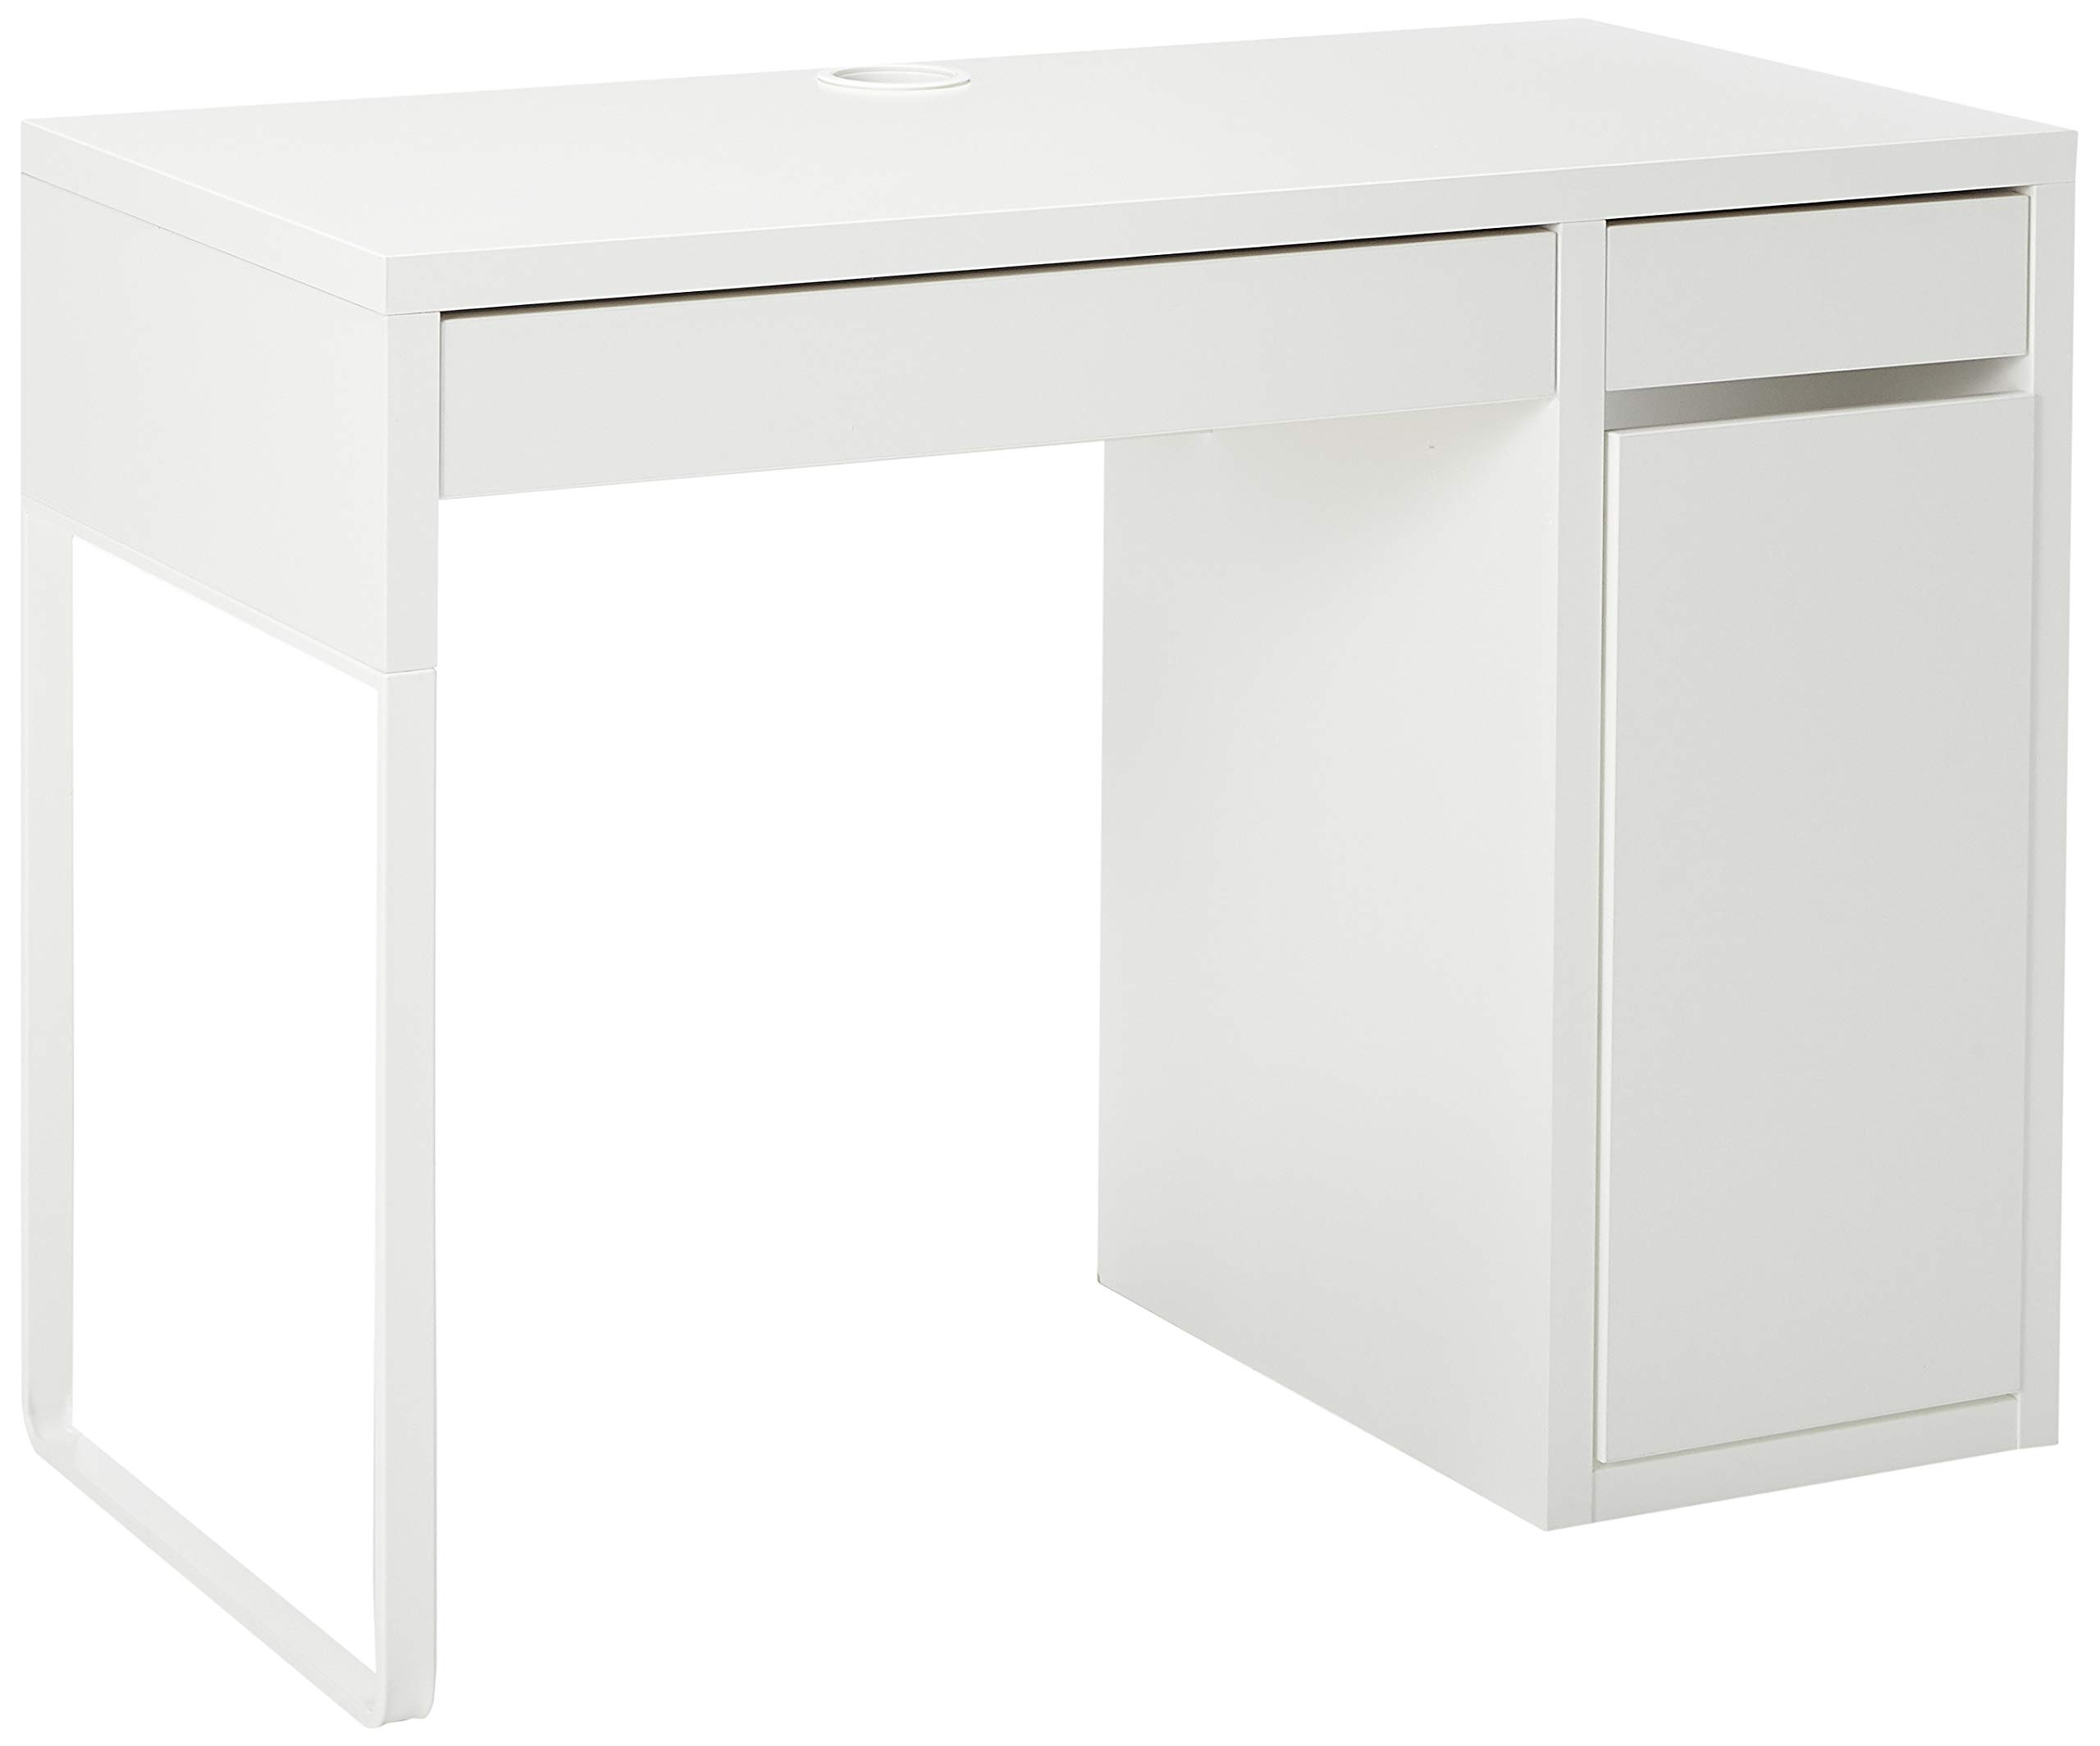 IKEA 802.130.74 MICKE Desk, White by IKEA